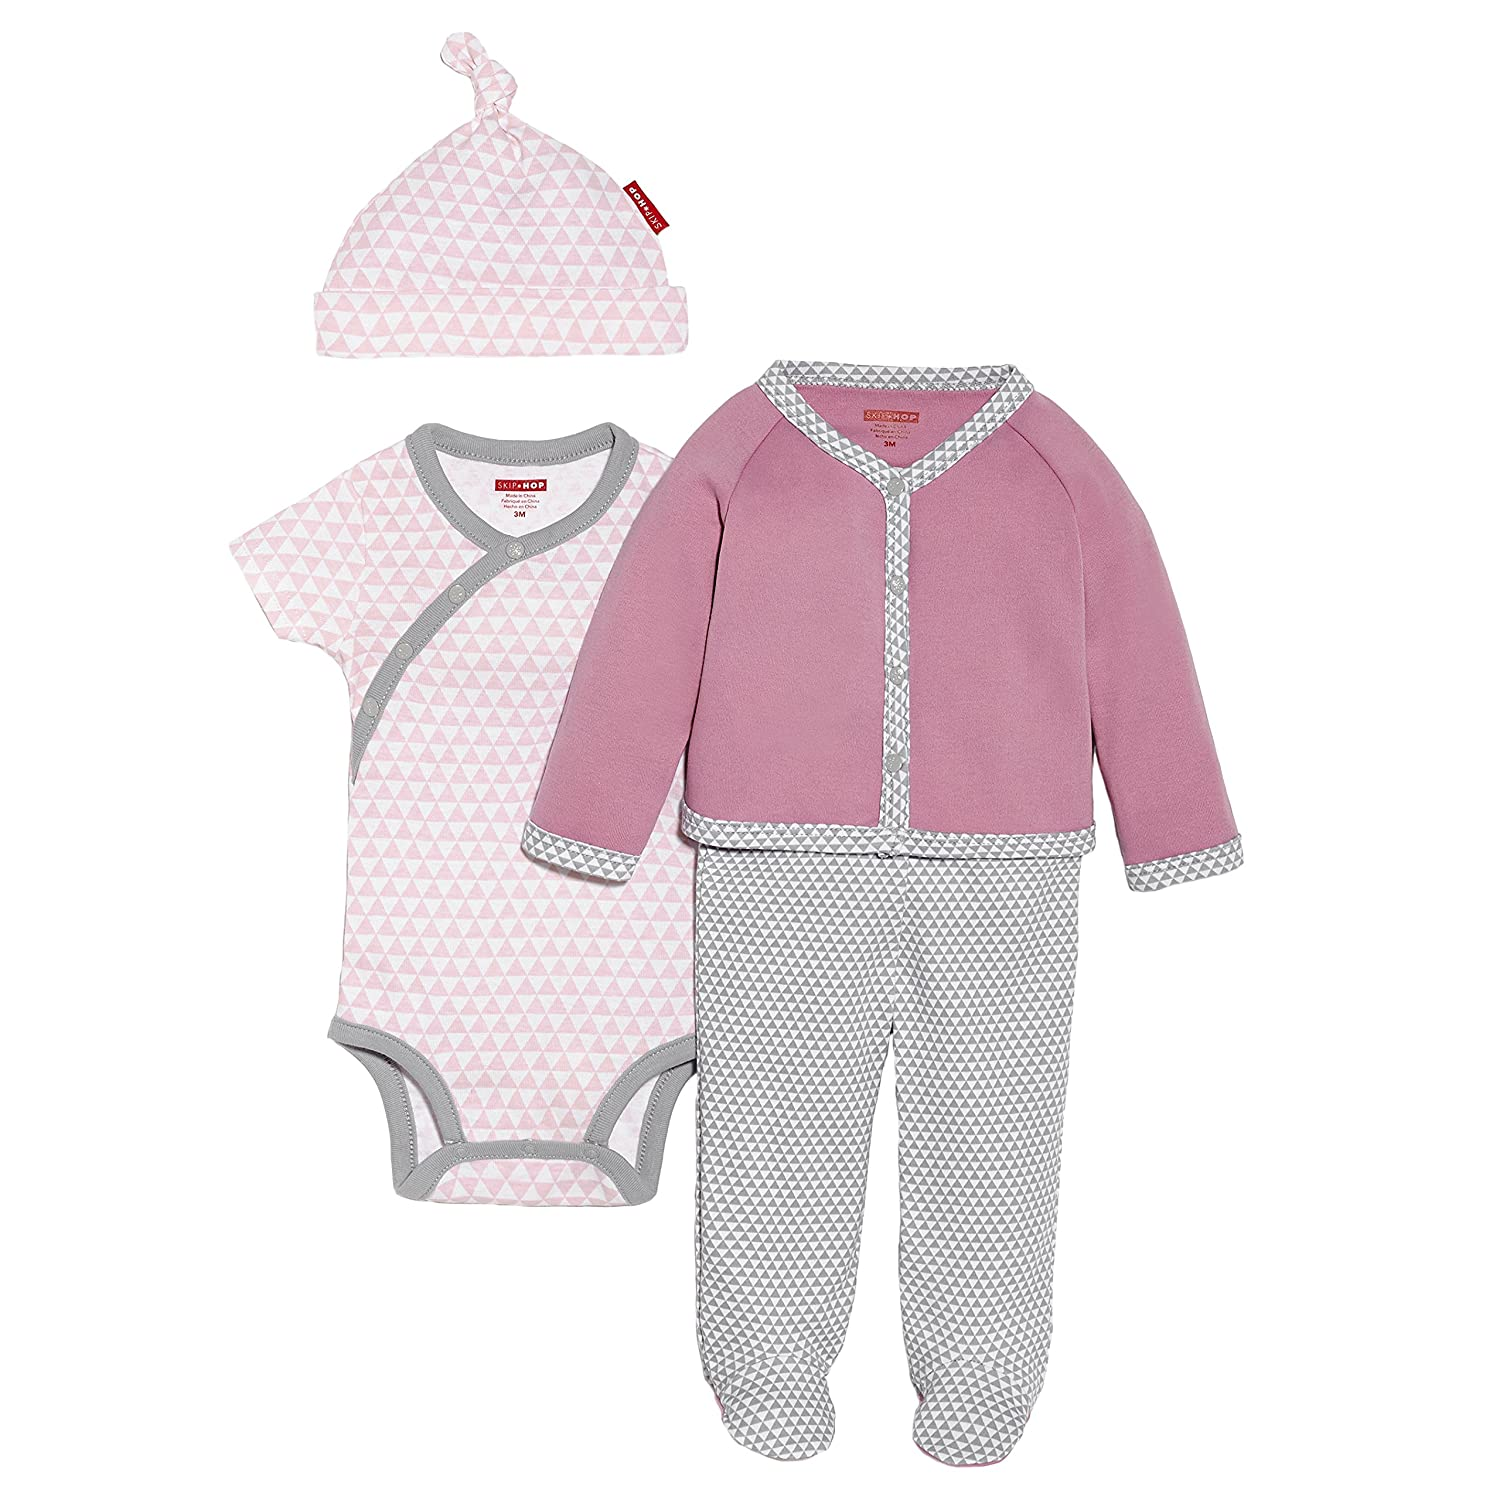 Skip Hop Baby-Girls Baby Baby Girls' 4 Piece Welcome Home Set Pink 3 Months 279250-3M